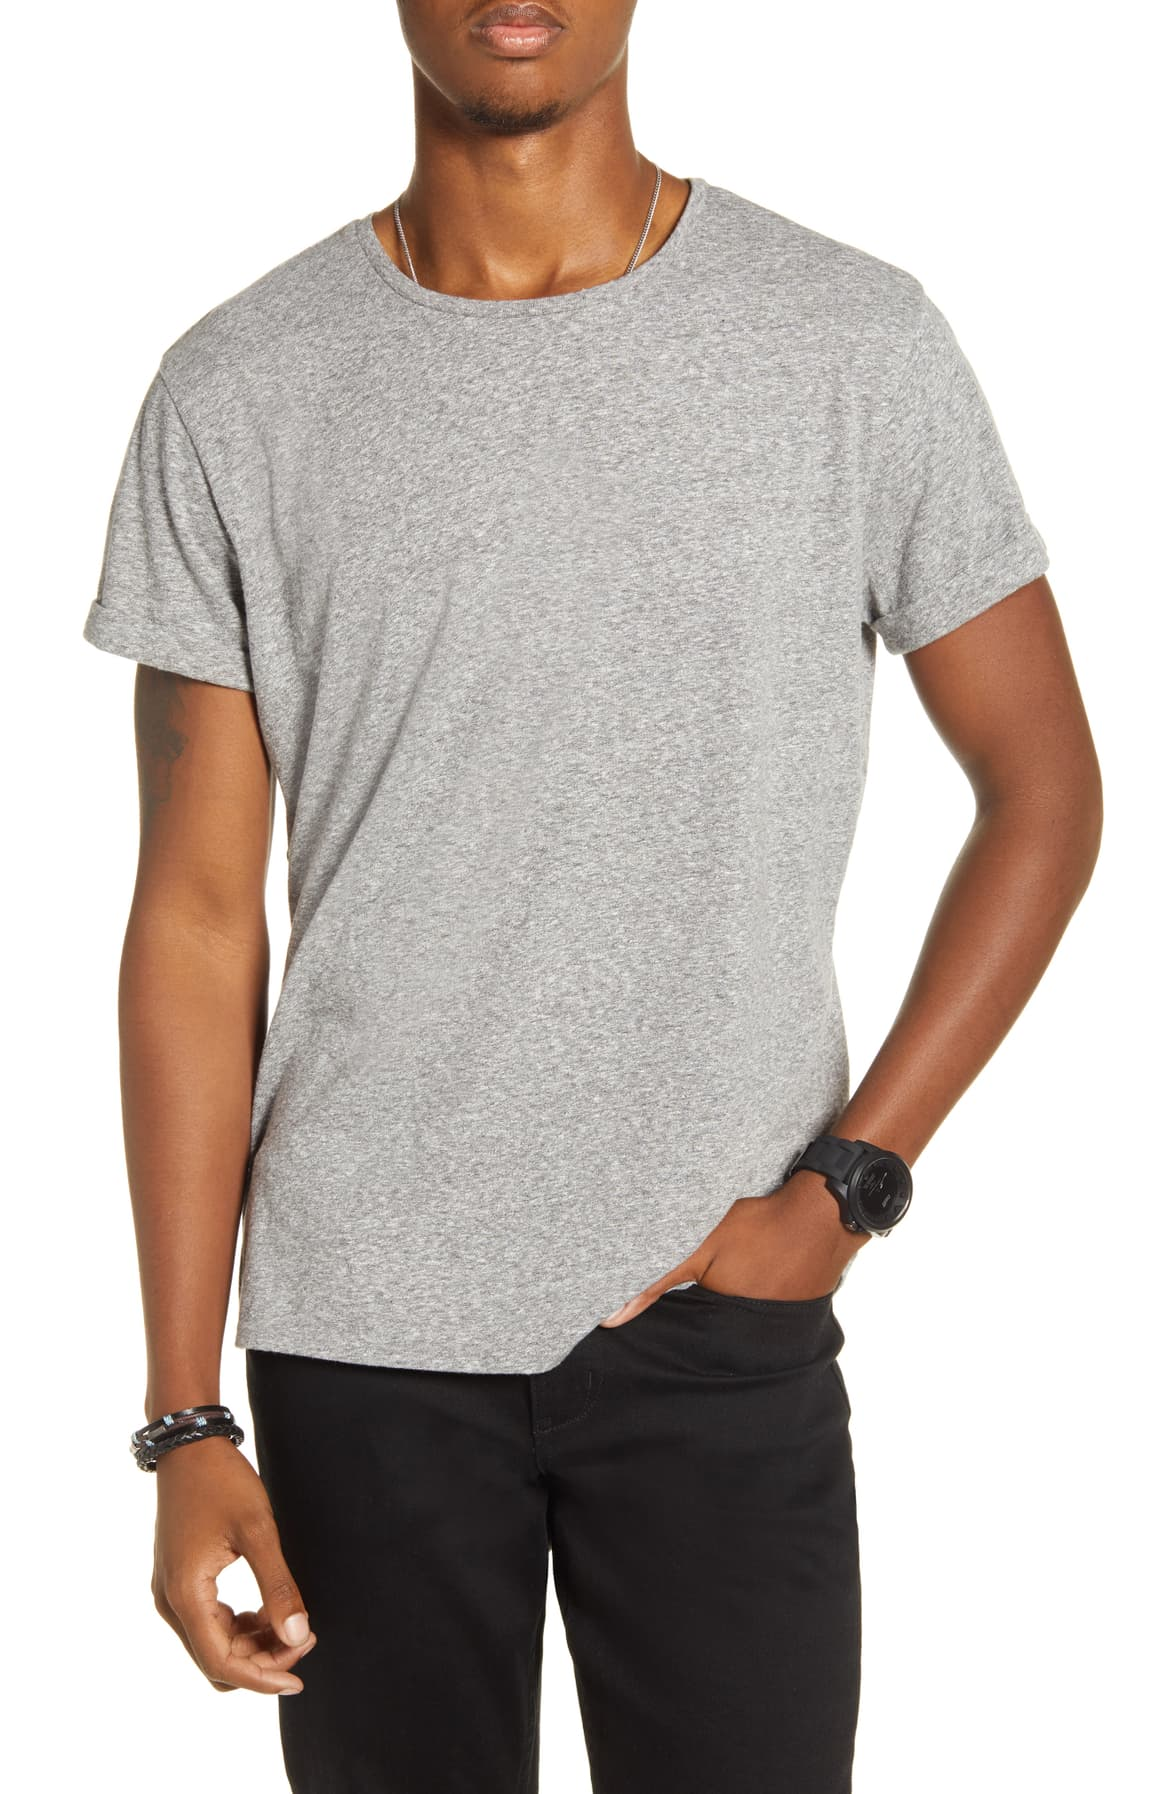 BP. x Alex Costa Men's Collection Launch Nordstrom T-Shirt